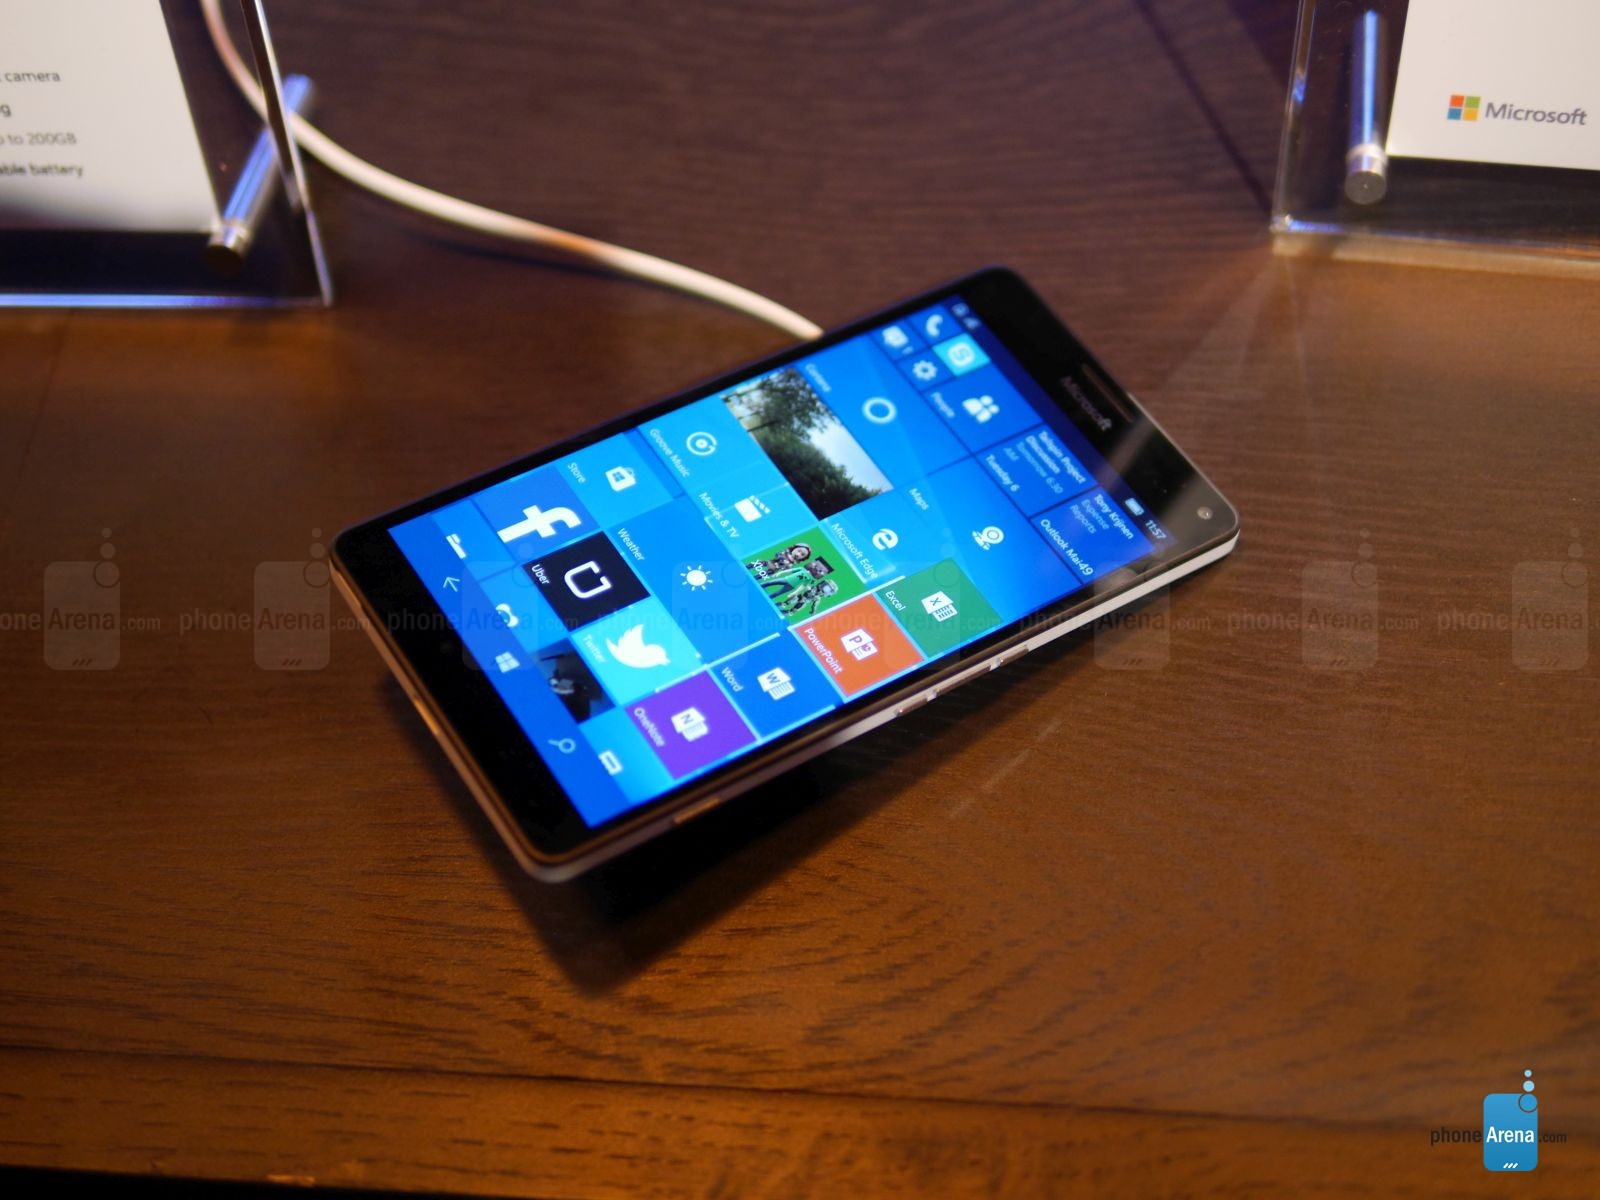 Microsoft-Lumia-950-XL-hands-on (3)